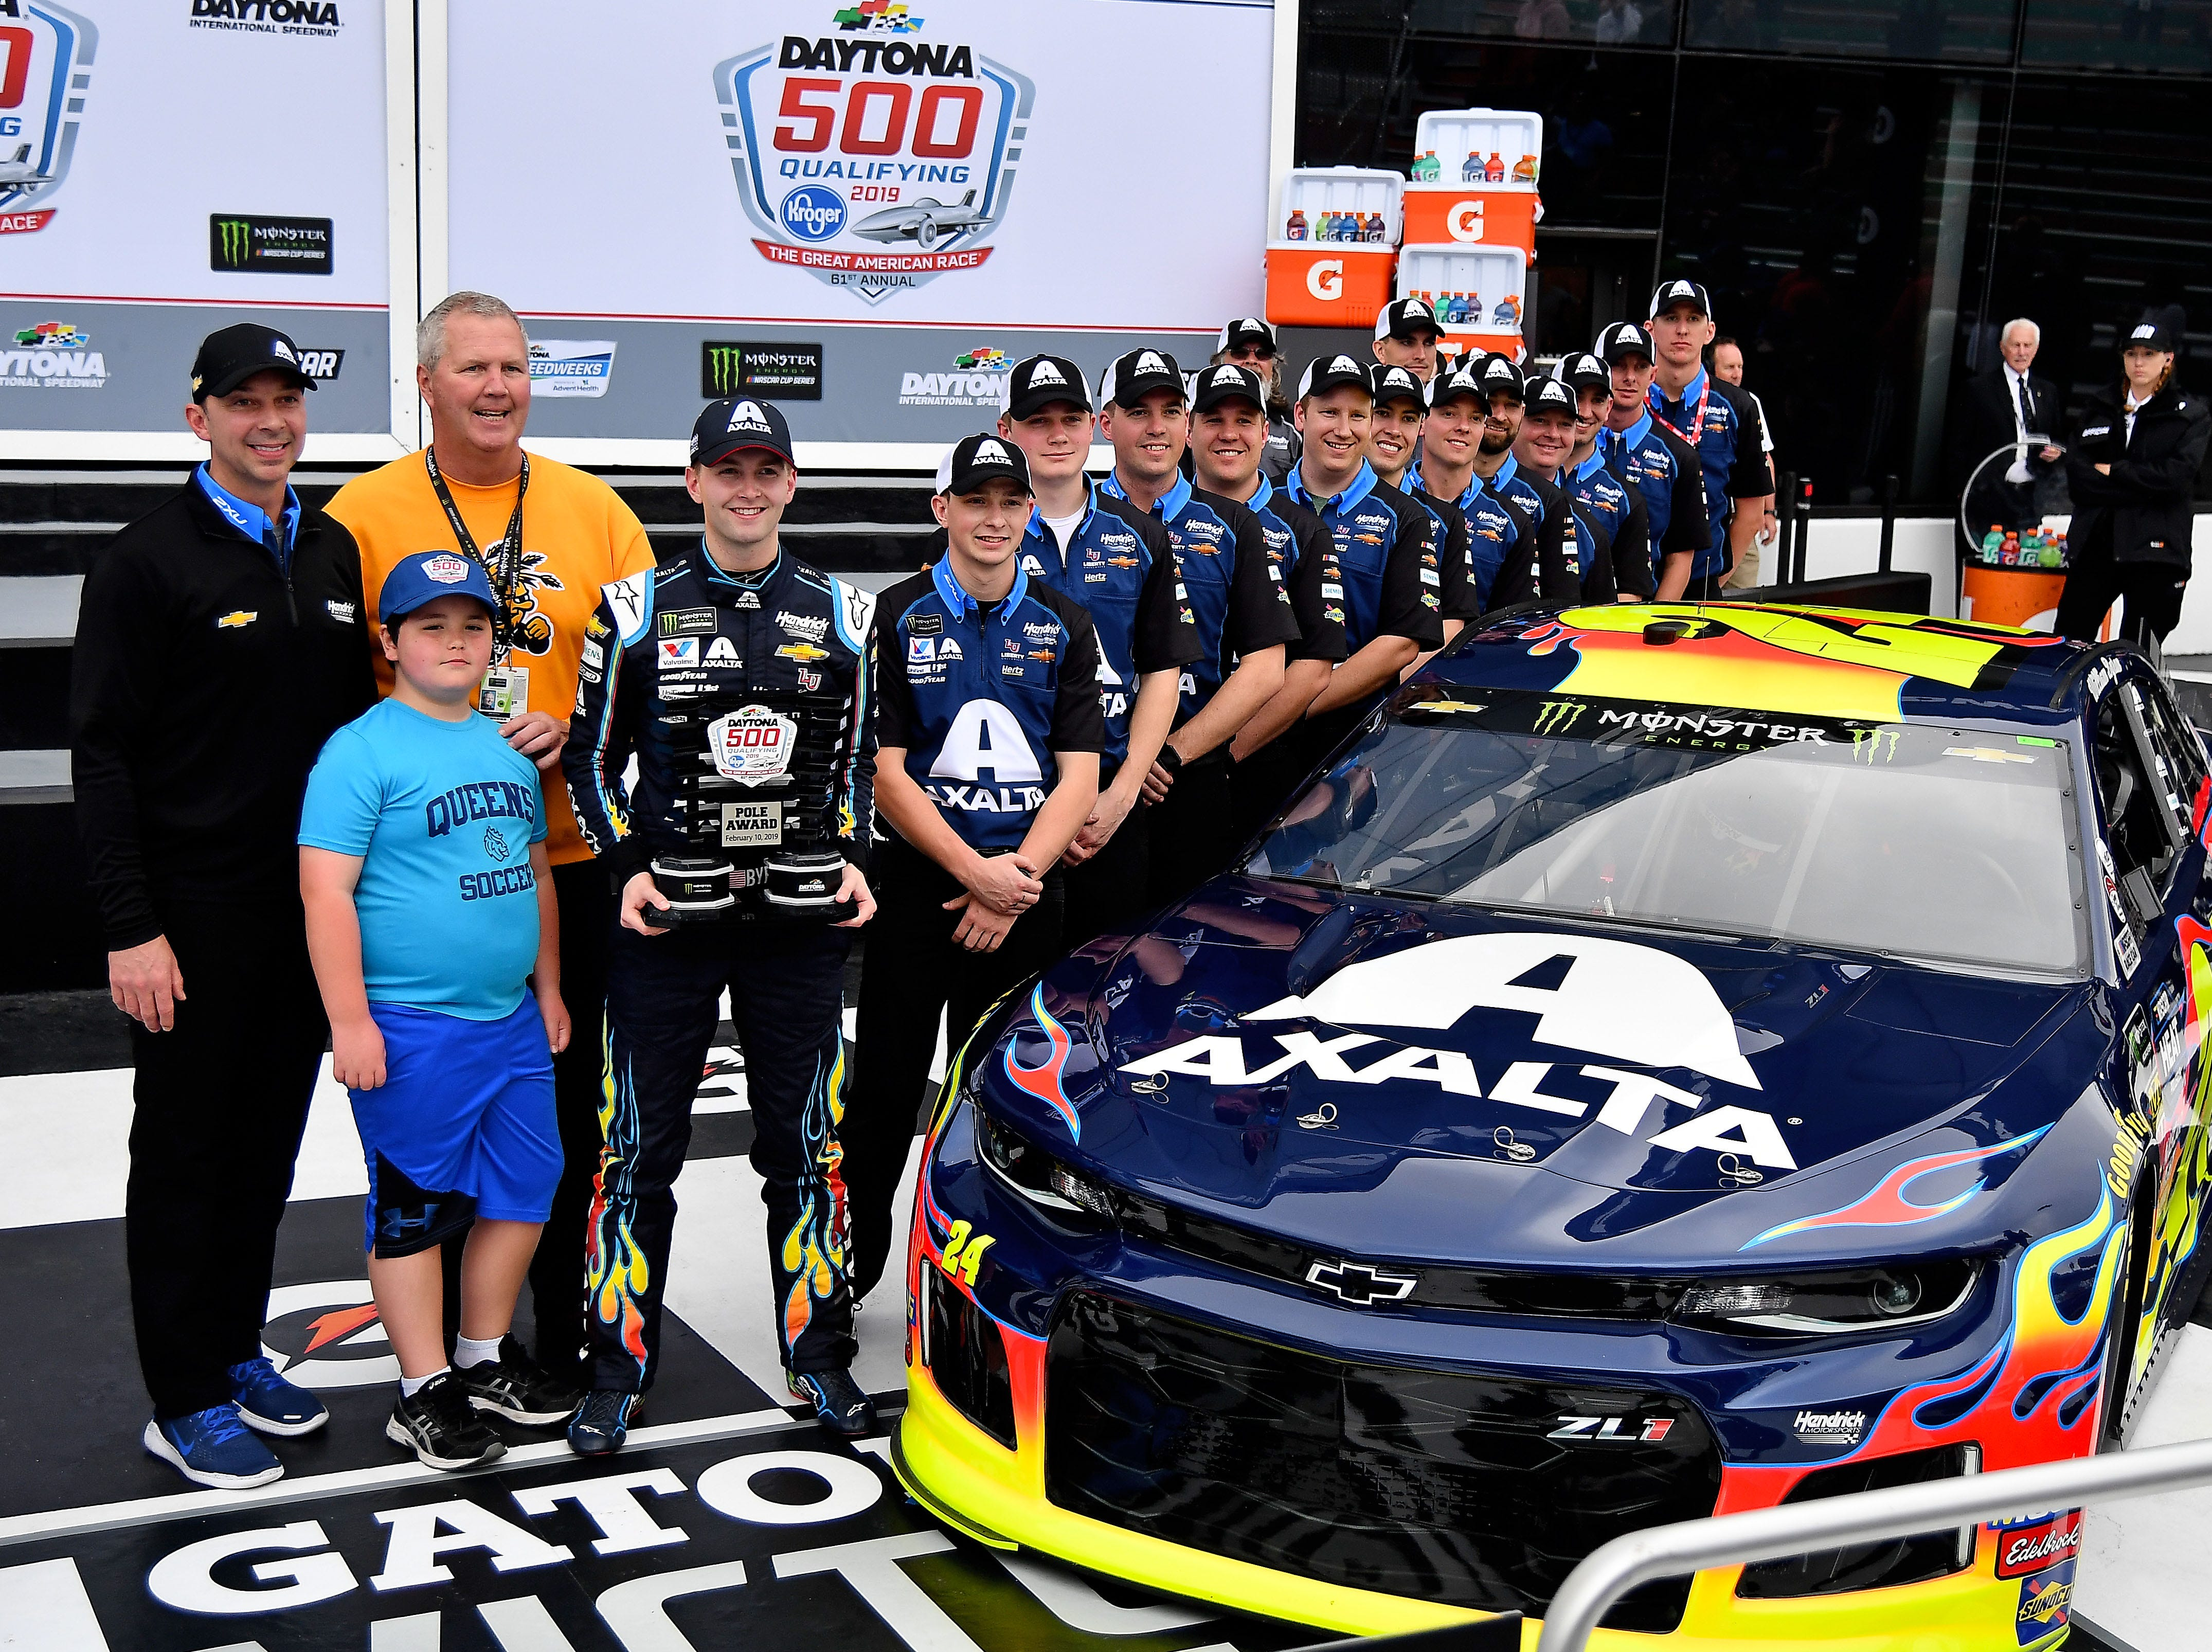 Feb 10: , William Byron and his team pose after winning the pole for the 2019 Daytona 500, his first career NASCAR Cup Series pole.